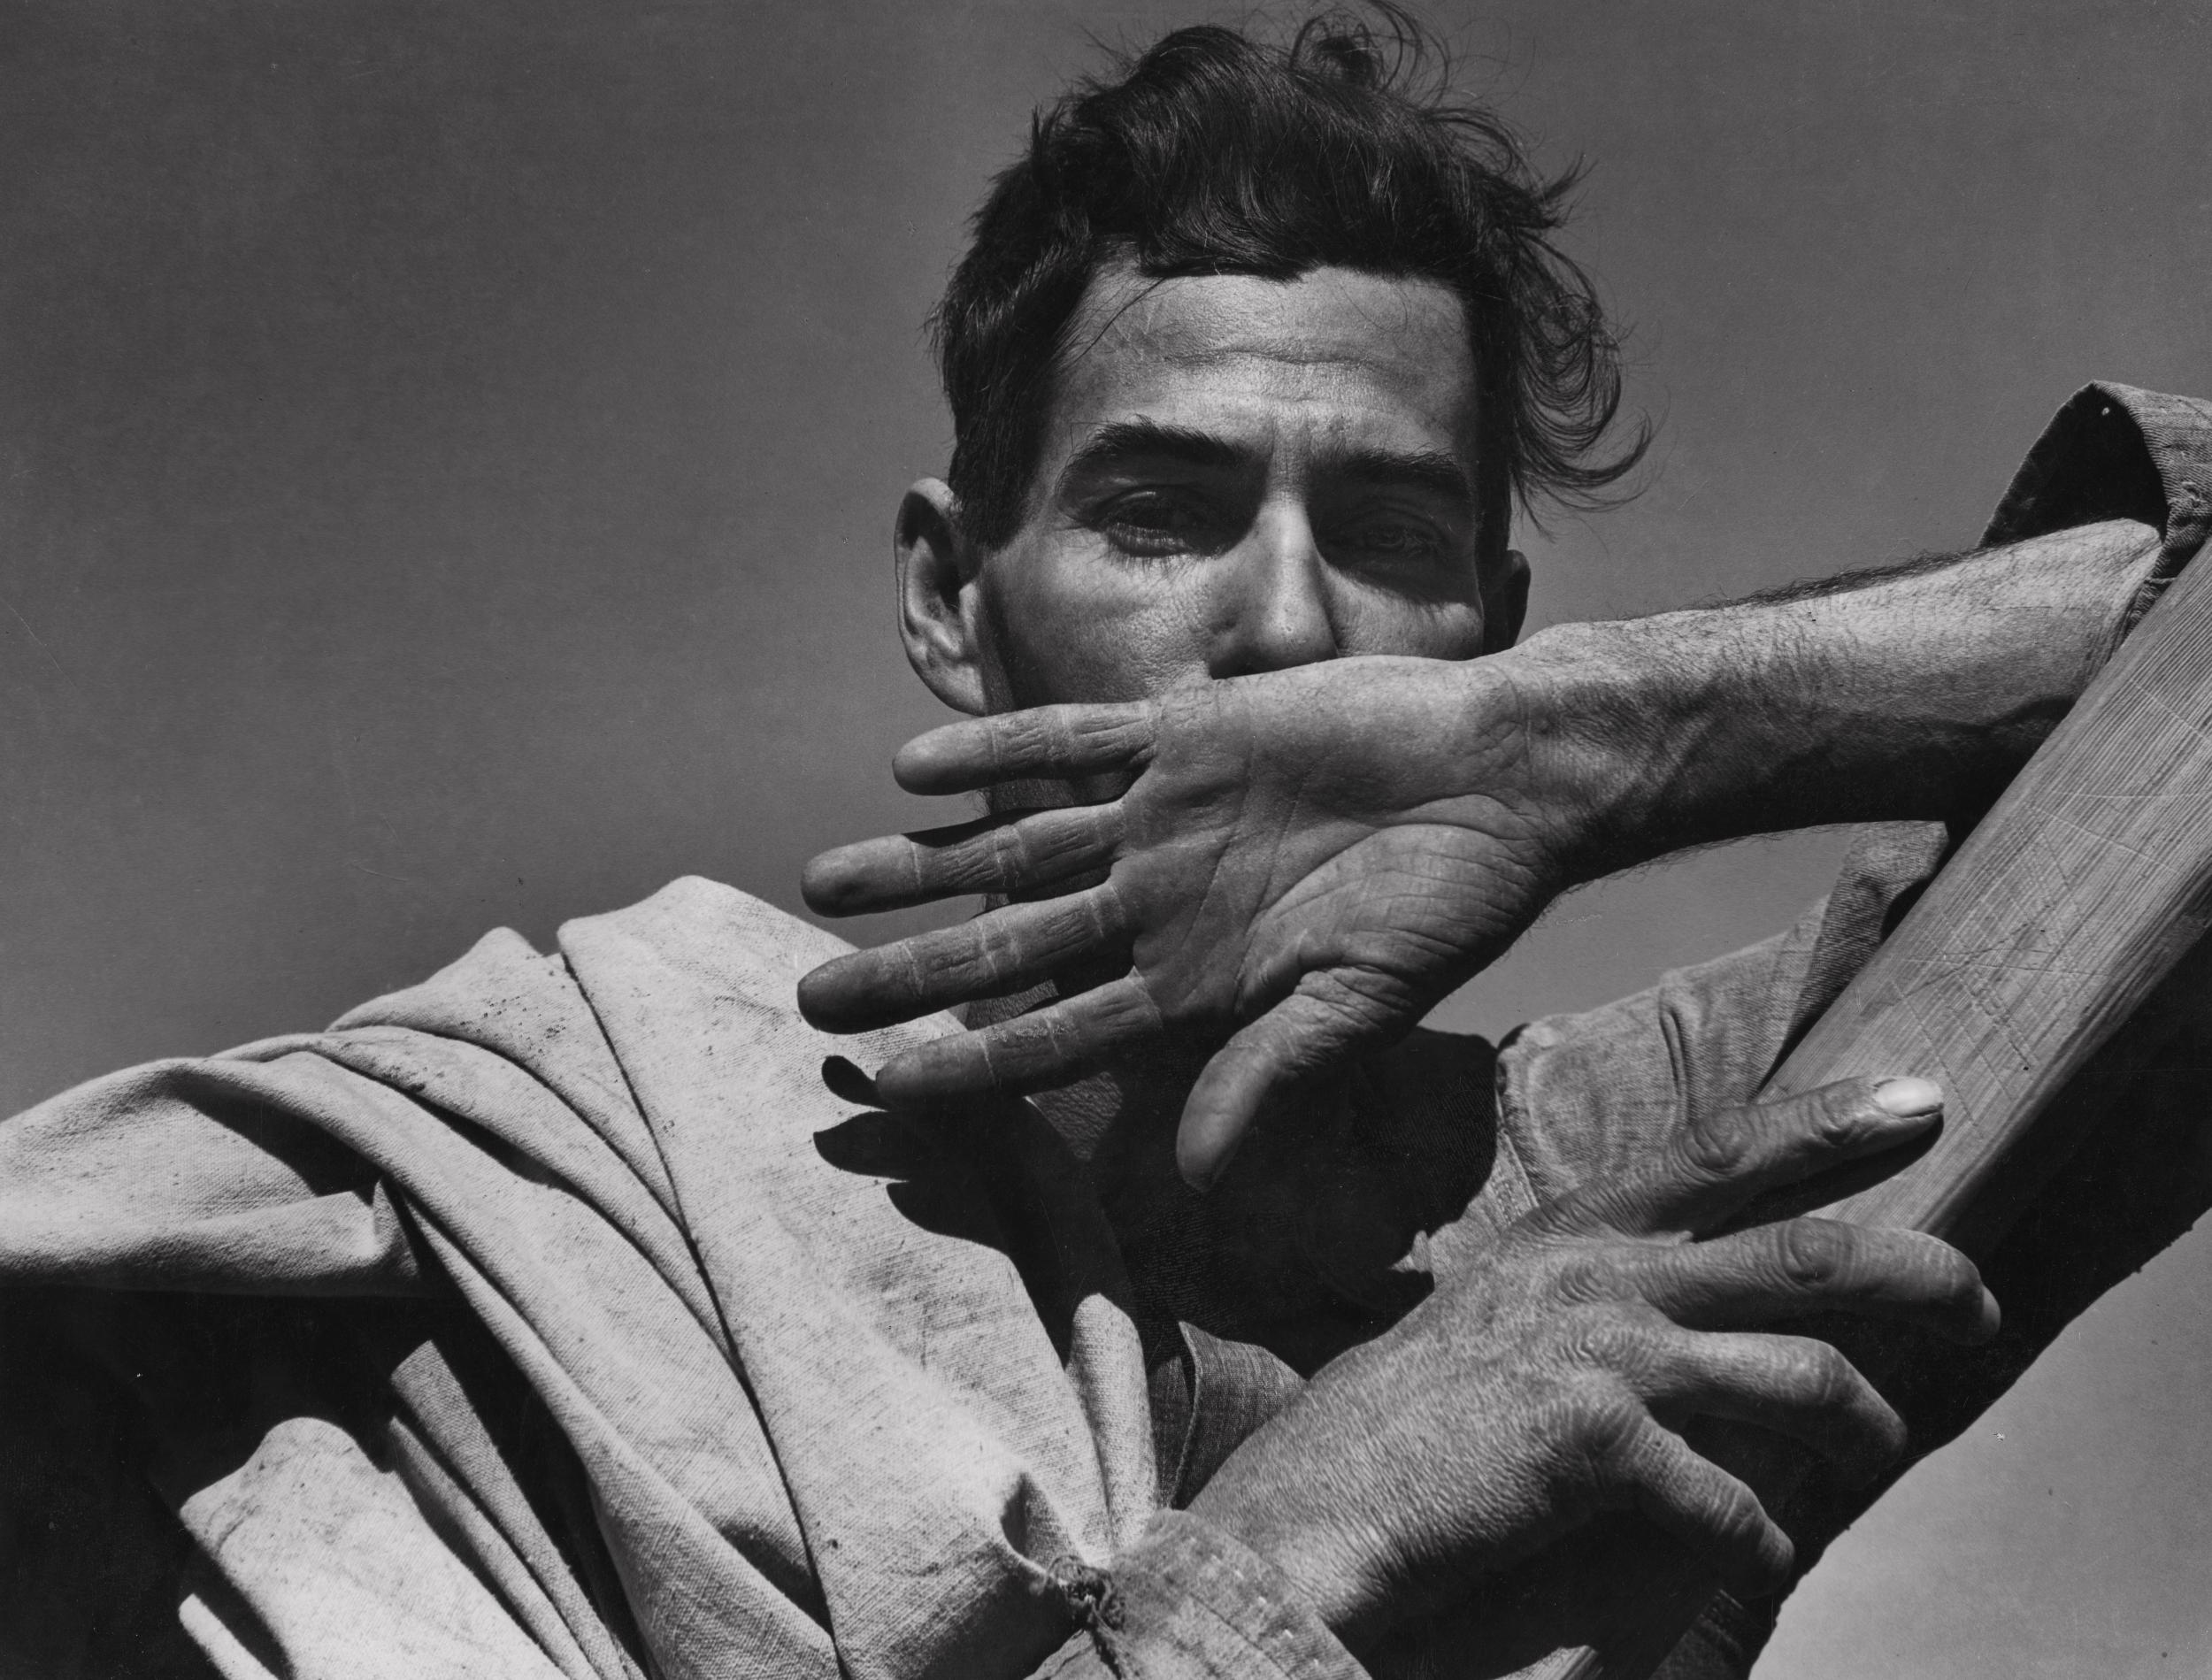 Dorothea Lange: the Politics of Seeing, Barbican, London, Review: These Photographs Have a Fearless Honesty